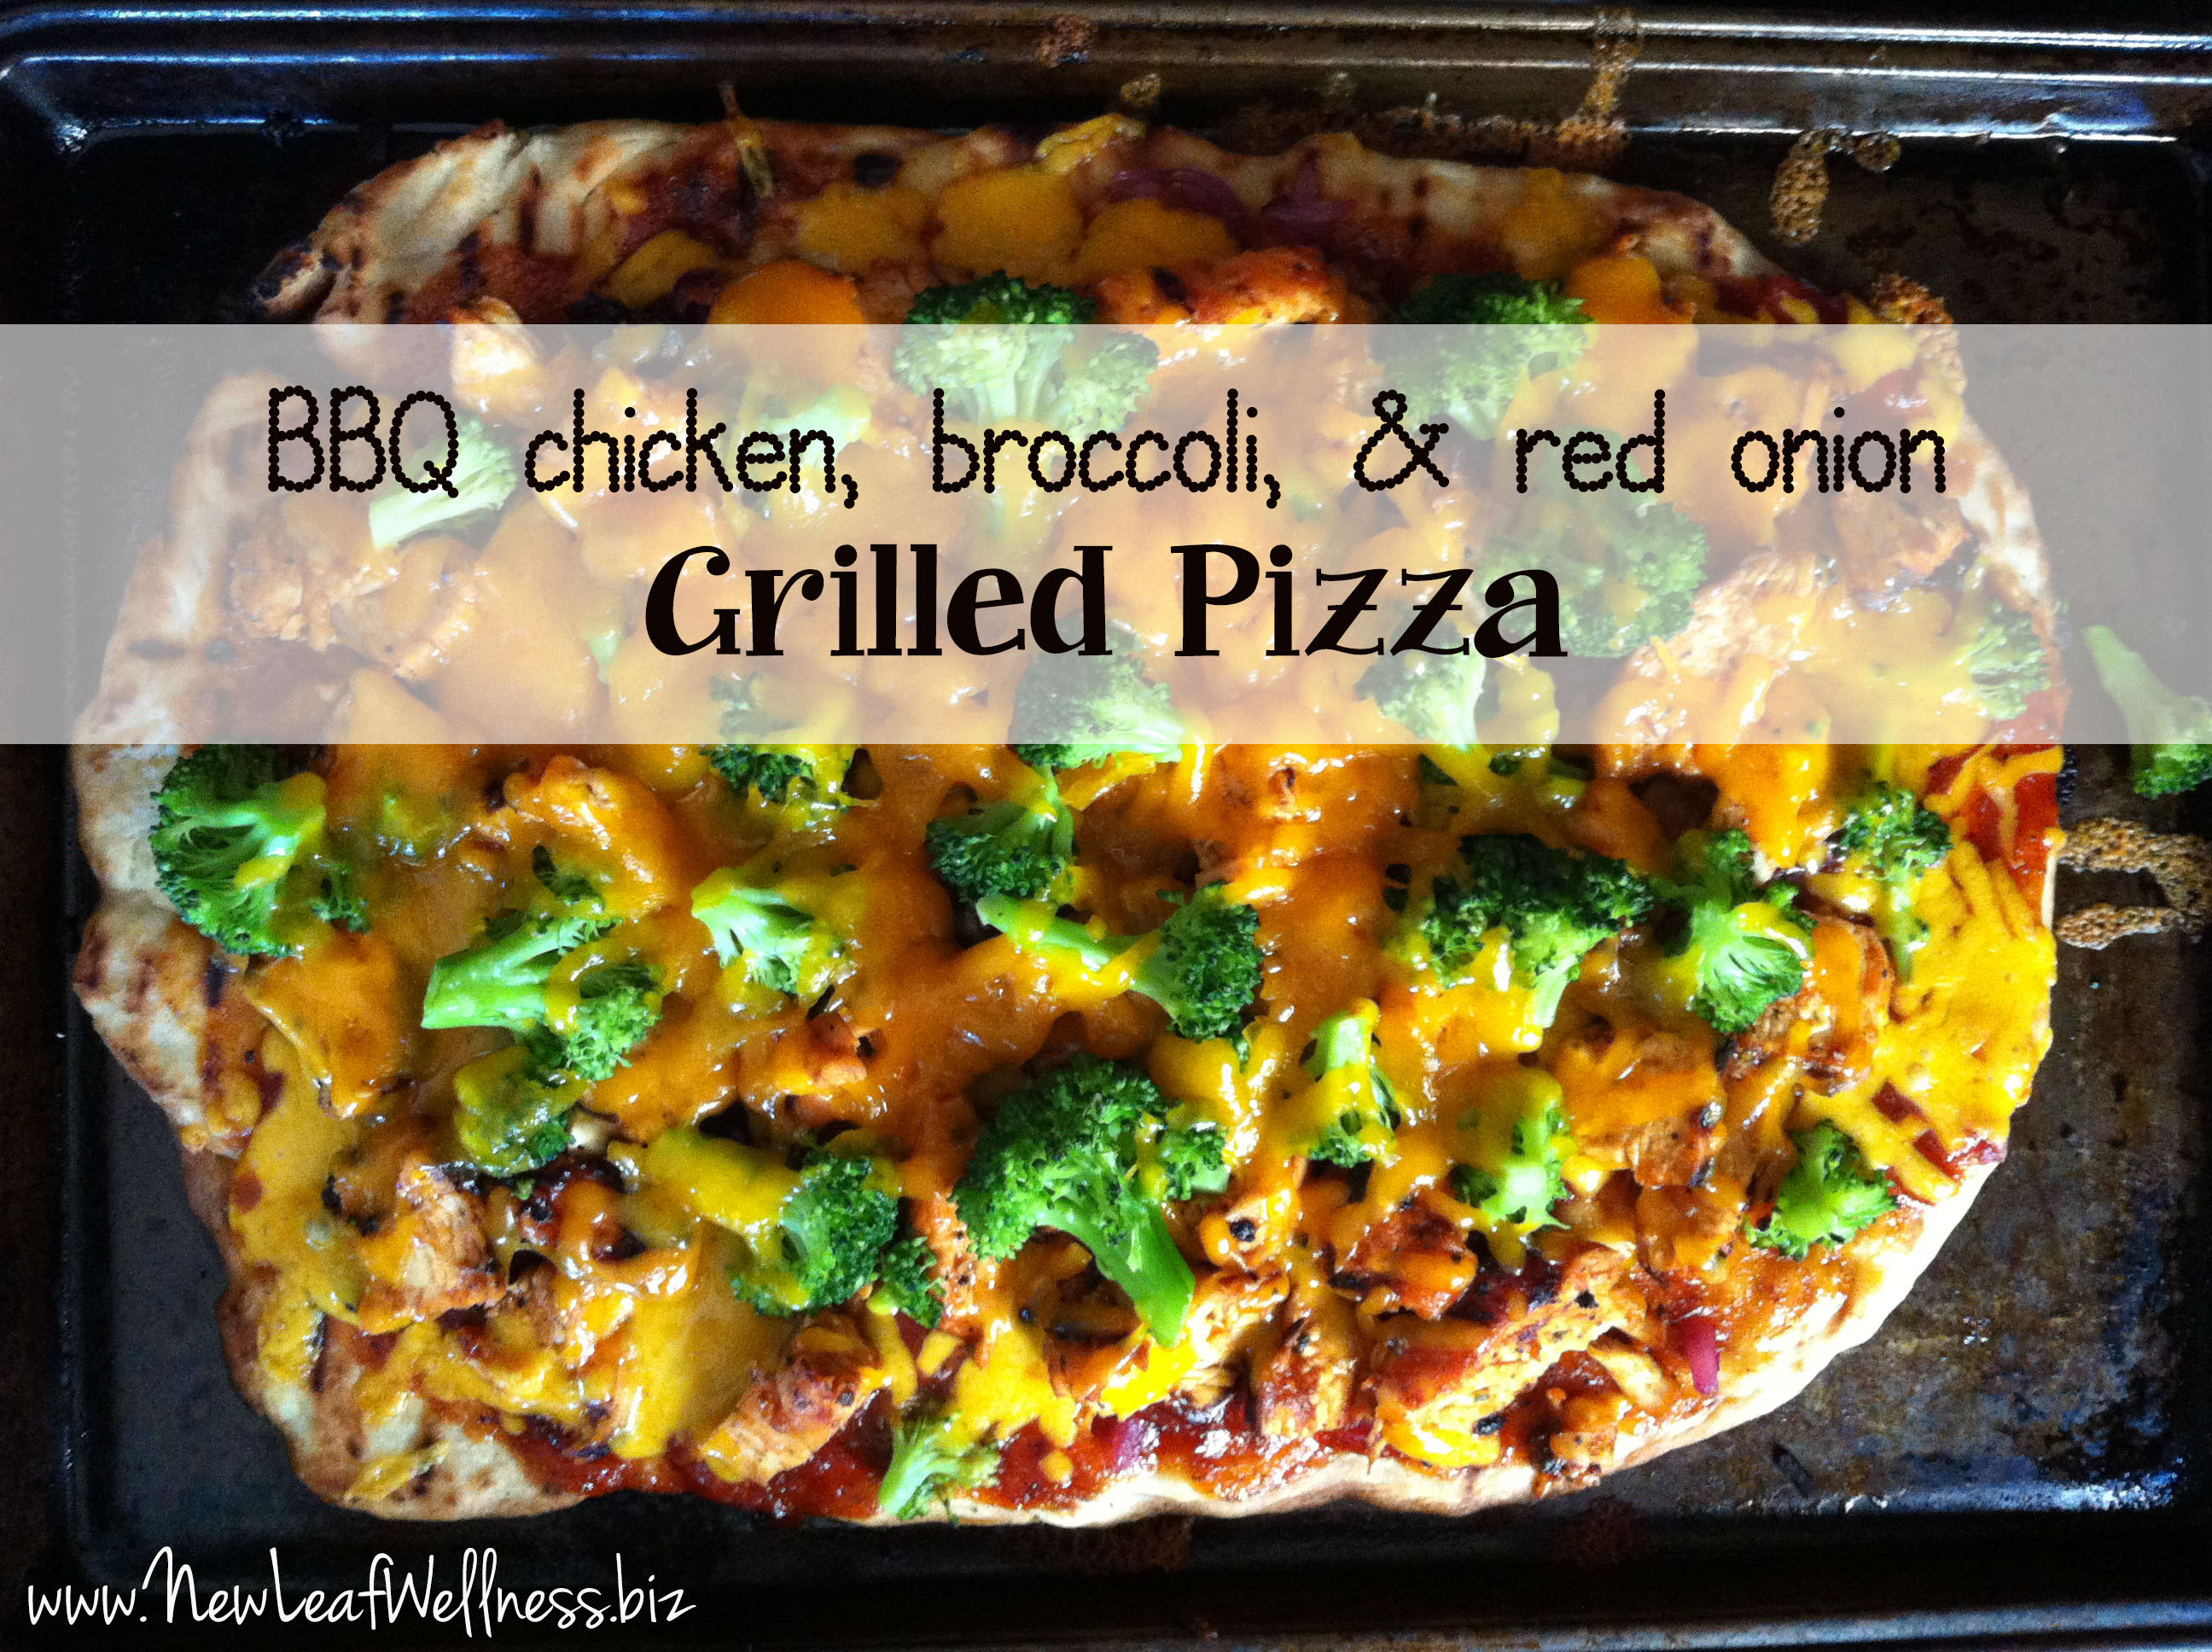 grilled pizza recipe with bbq chicken, broccoli, and red onion